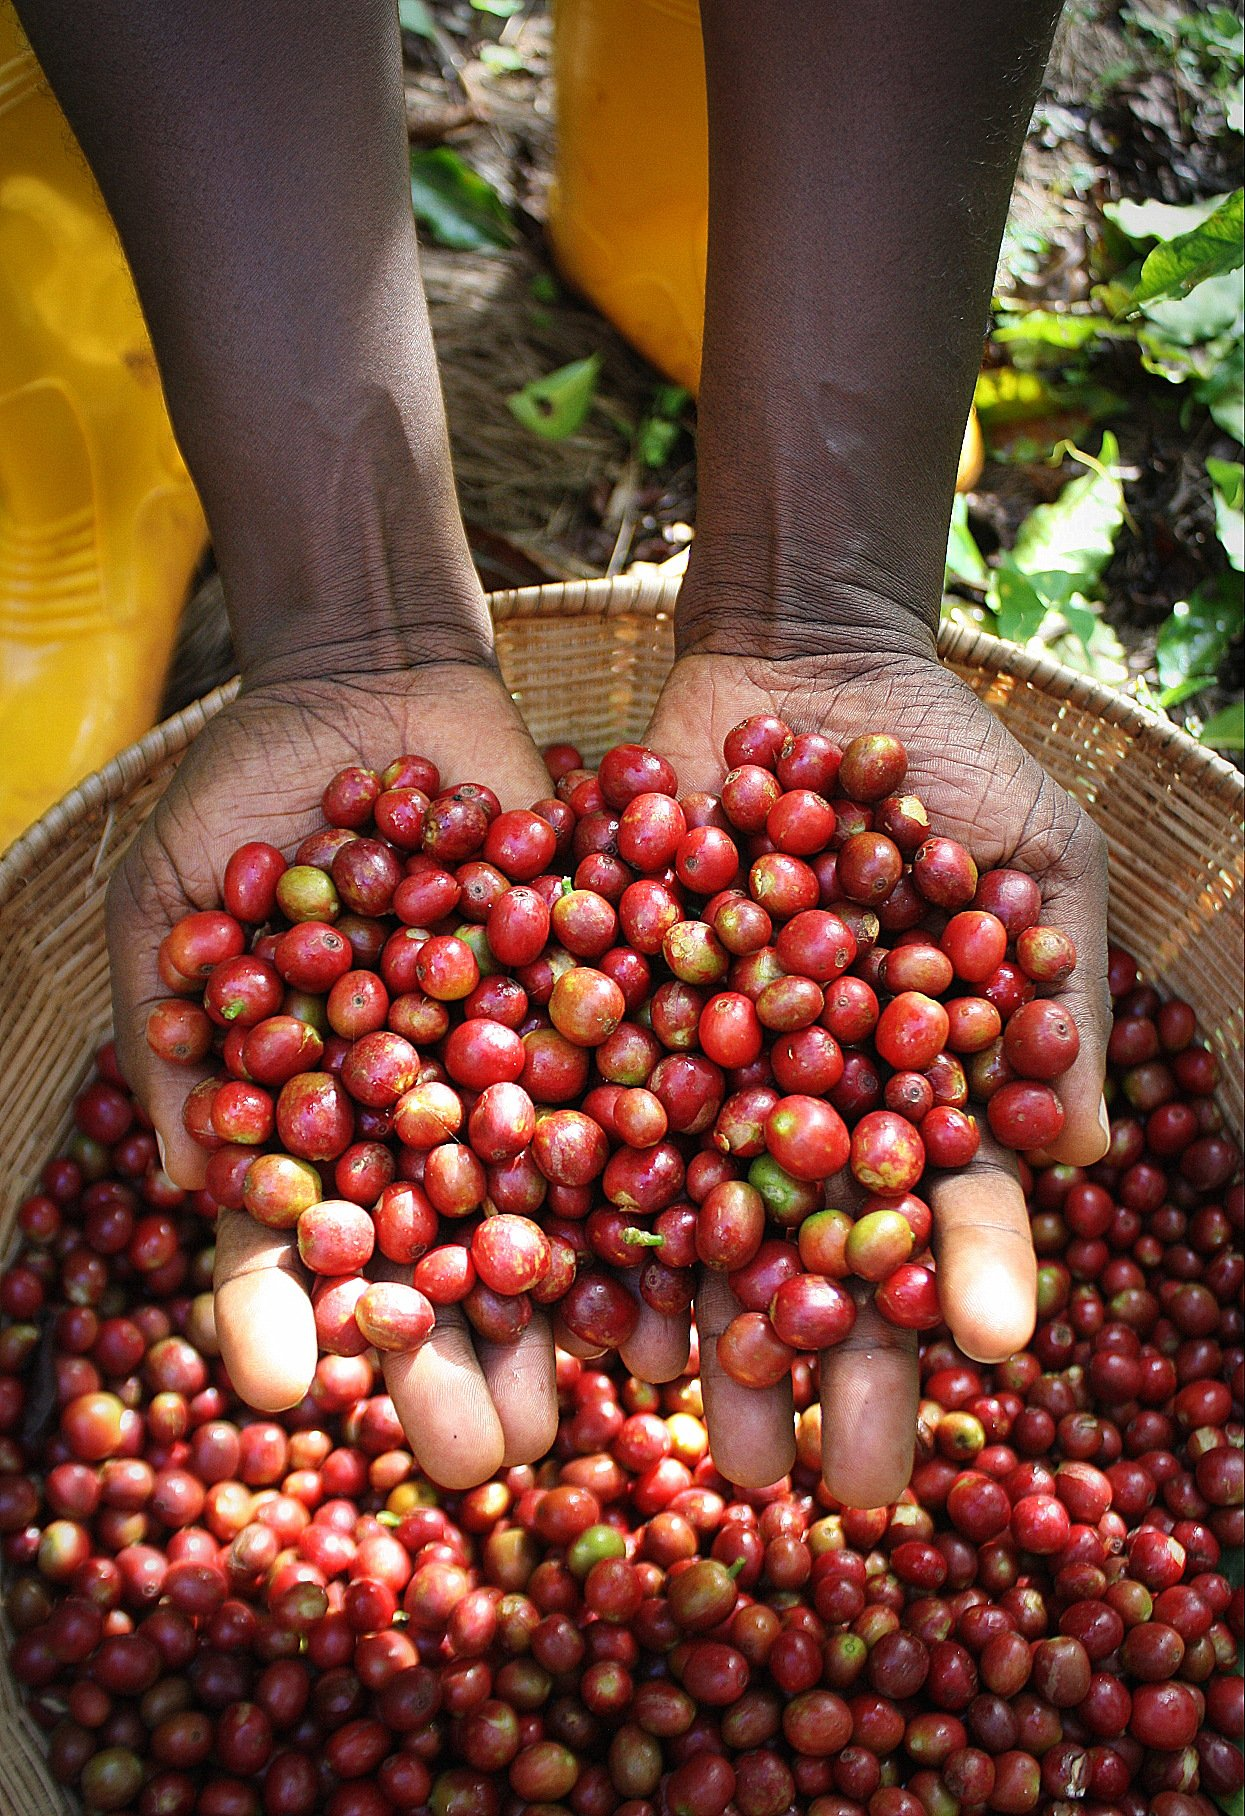 Burundi Butegana Washed (5 LB) Unroasted Green Coffee Beans for Home Roasting, 100% Specialty Arabica Beans.